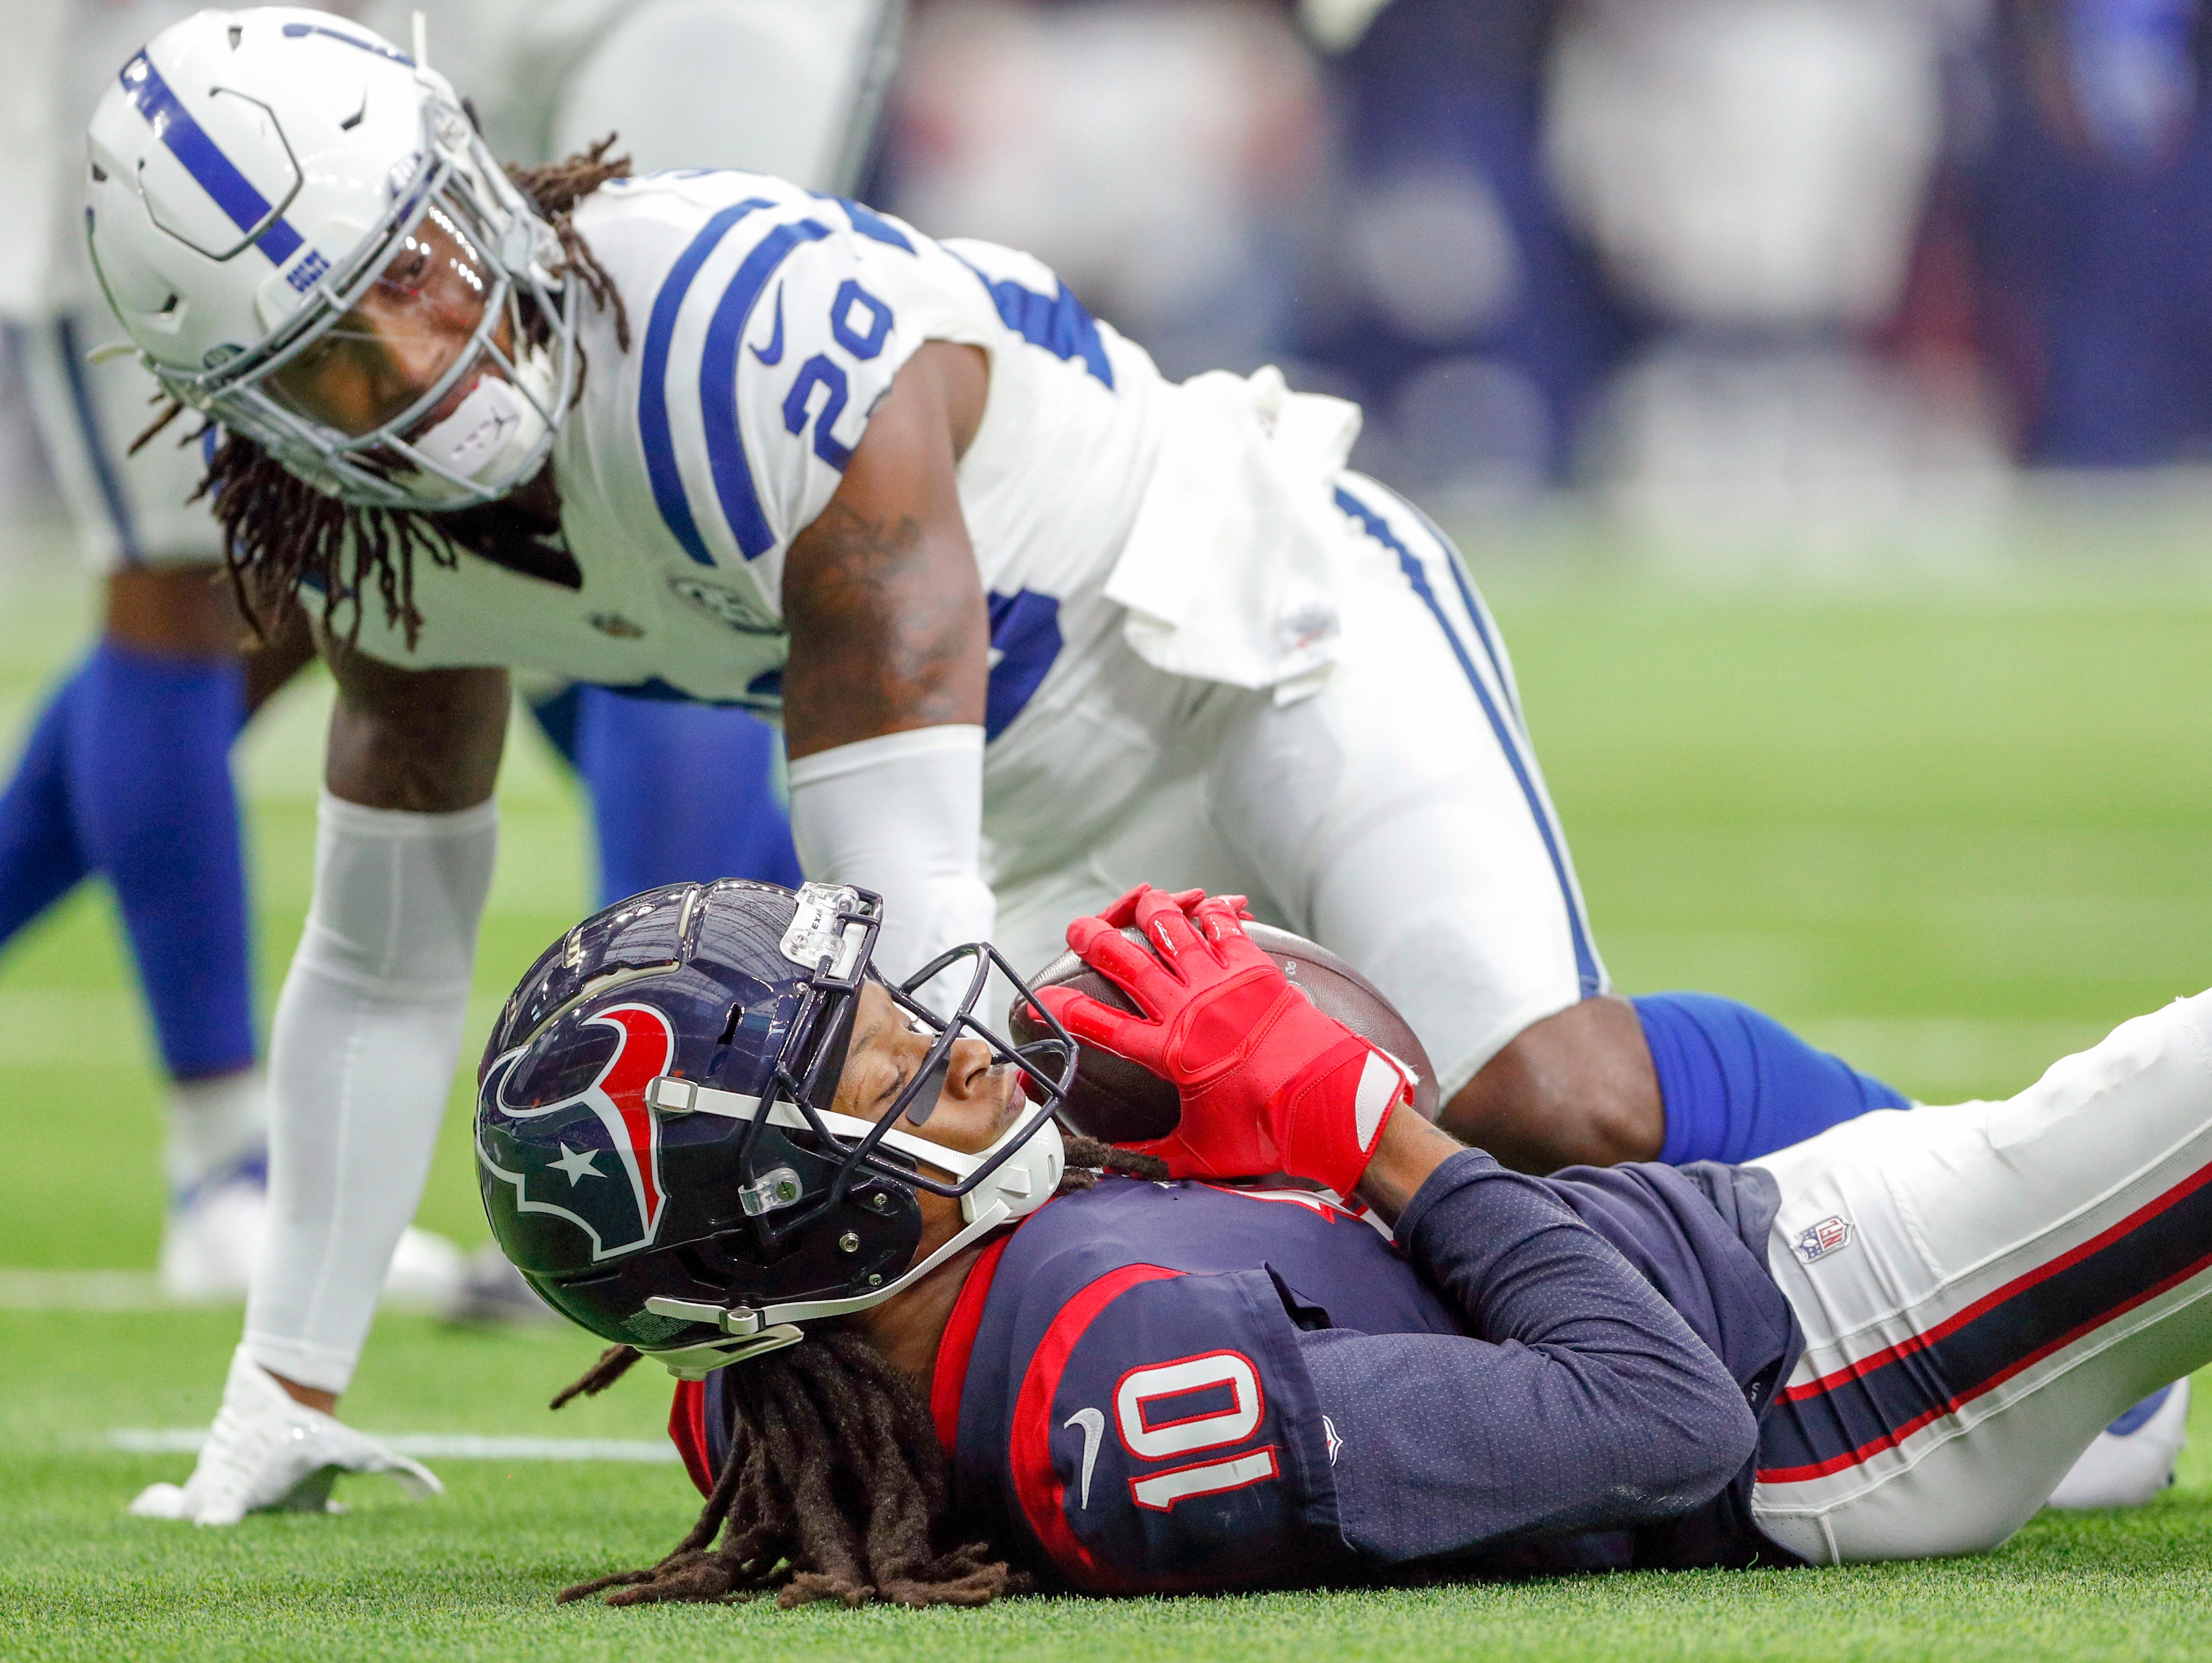 Houston Texans wide receiver DeAndre Hopkins (10) pulls in a catch near the end zone against the Indianapolis Colts at NRG Stadium in Houston on Sunday, Dec. 9, 2018.